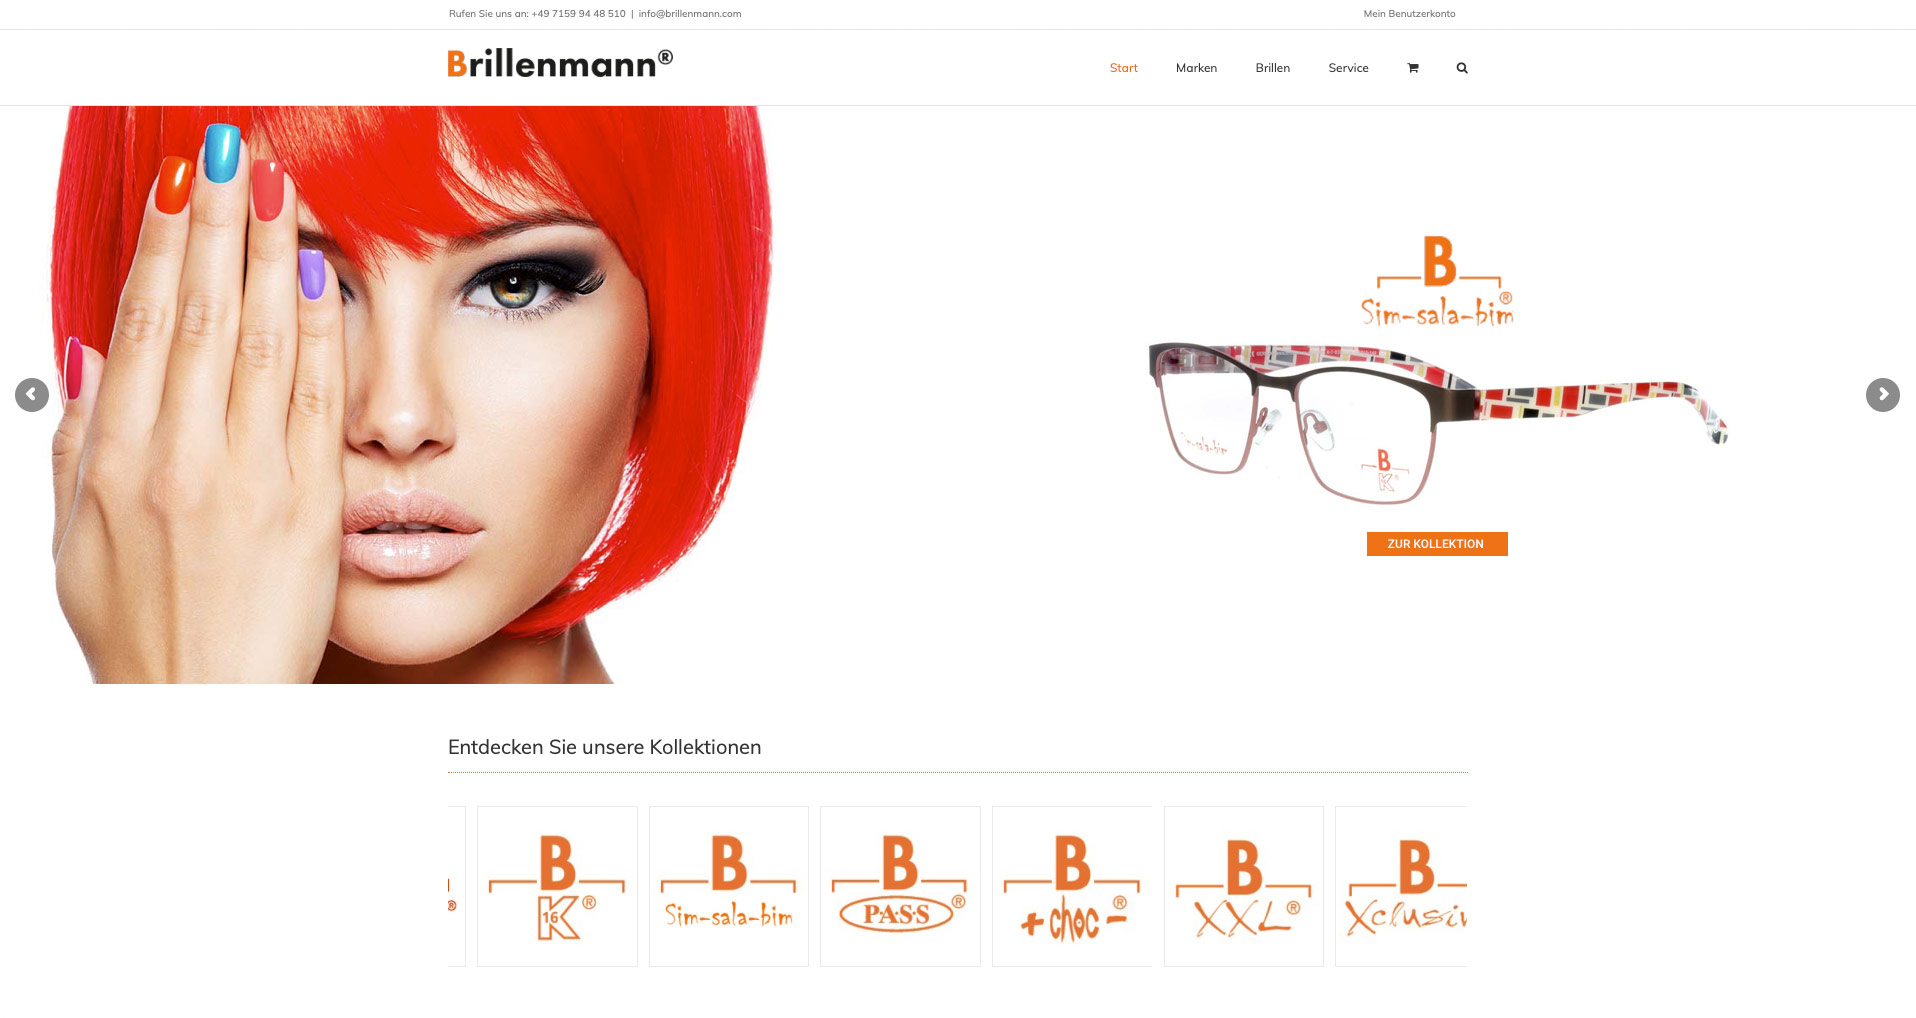 P1XEL - WordPress Website und B2B WooCommerce Onlineshop für den Brillenhersteller Brillenmann mit Sitz in Renningen